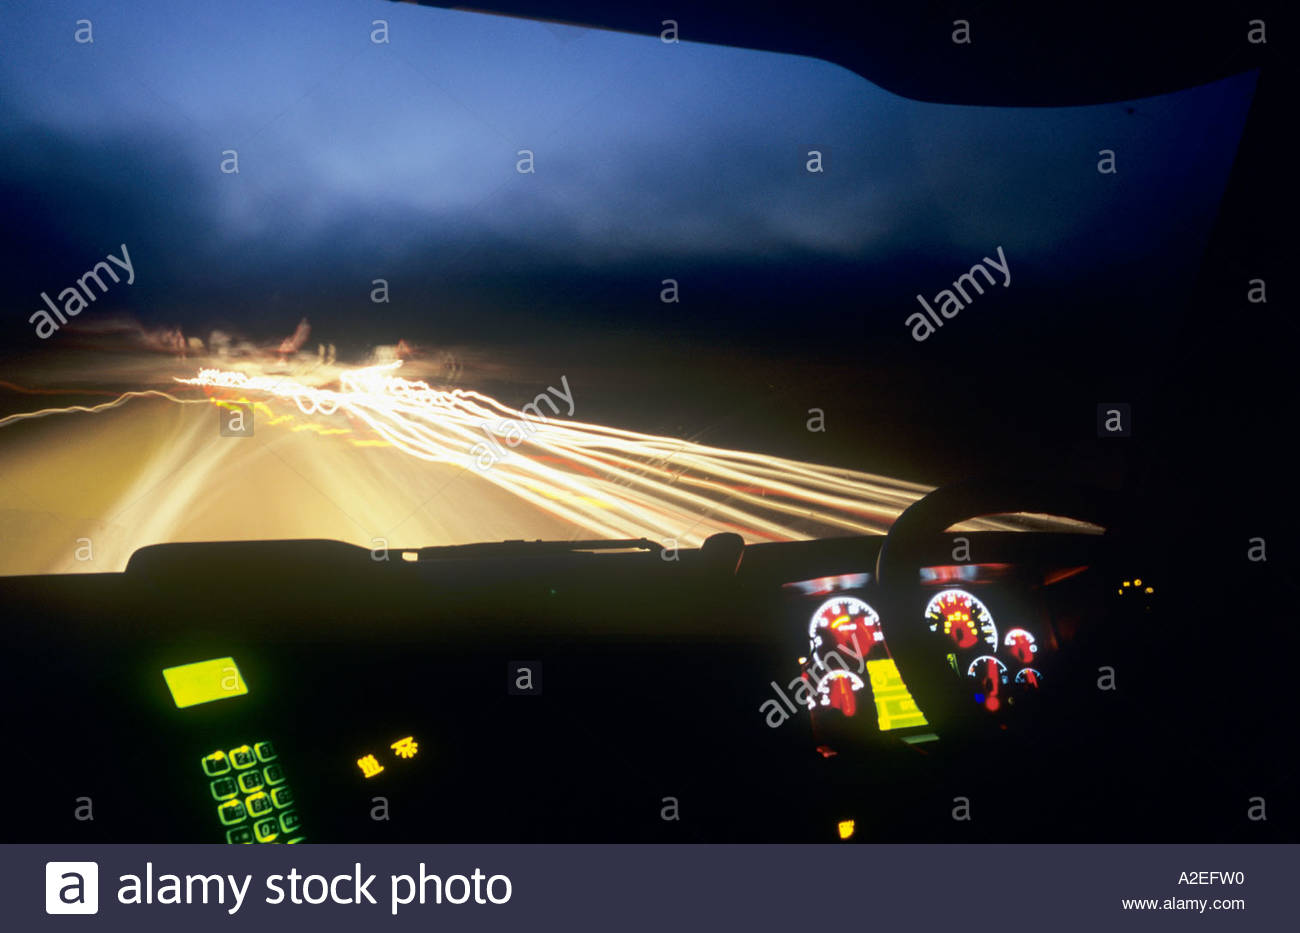 driving vehicle night lights as seen from a lorry (truck) cab / driving concept Stock Photo